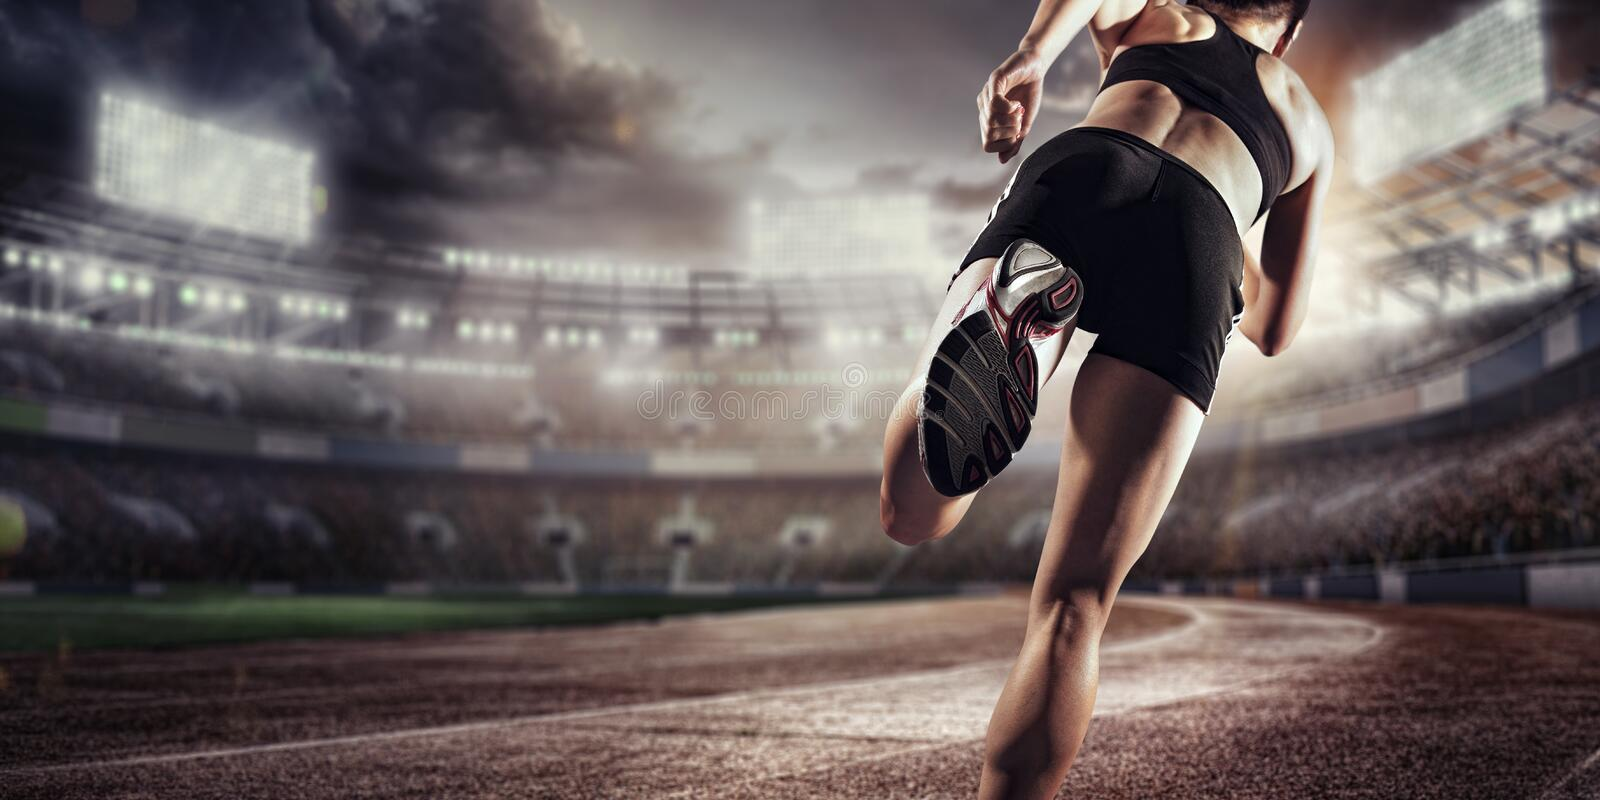 Sport Backgrounds. Soccer Stadium And Running Track. 3d ...